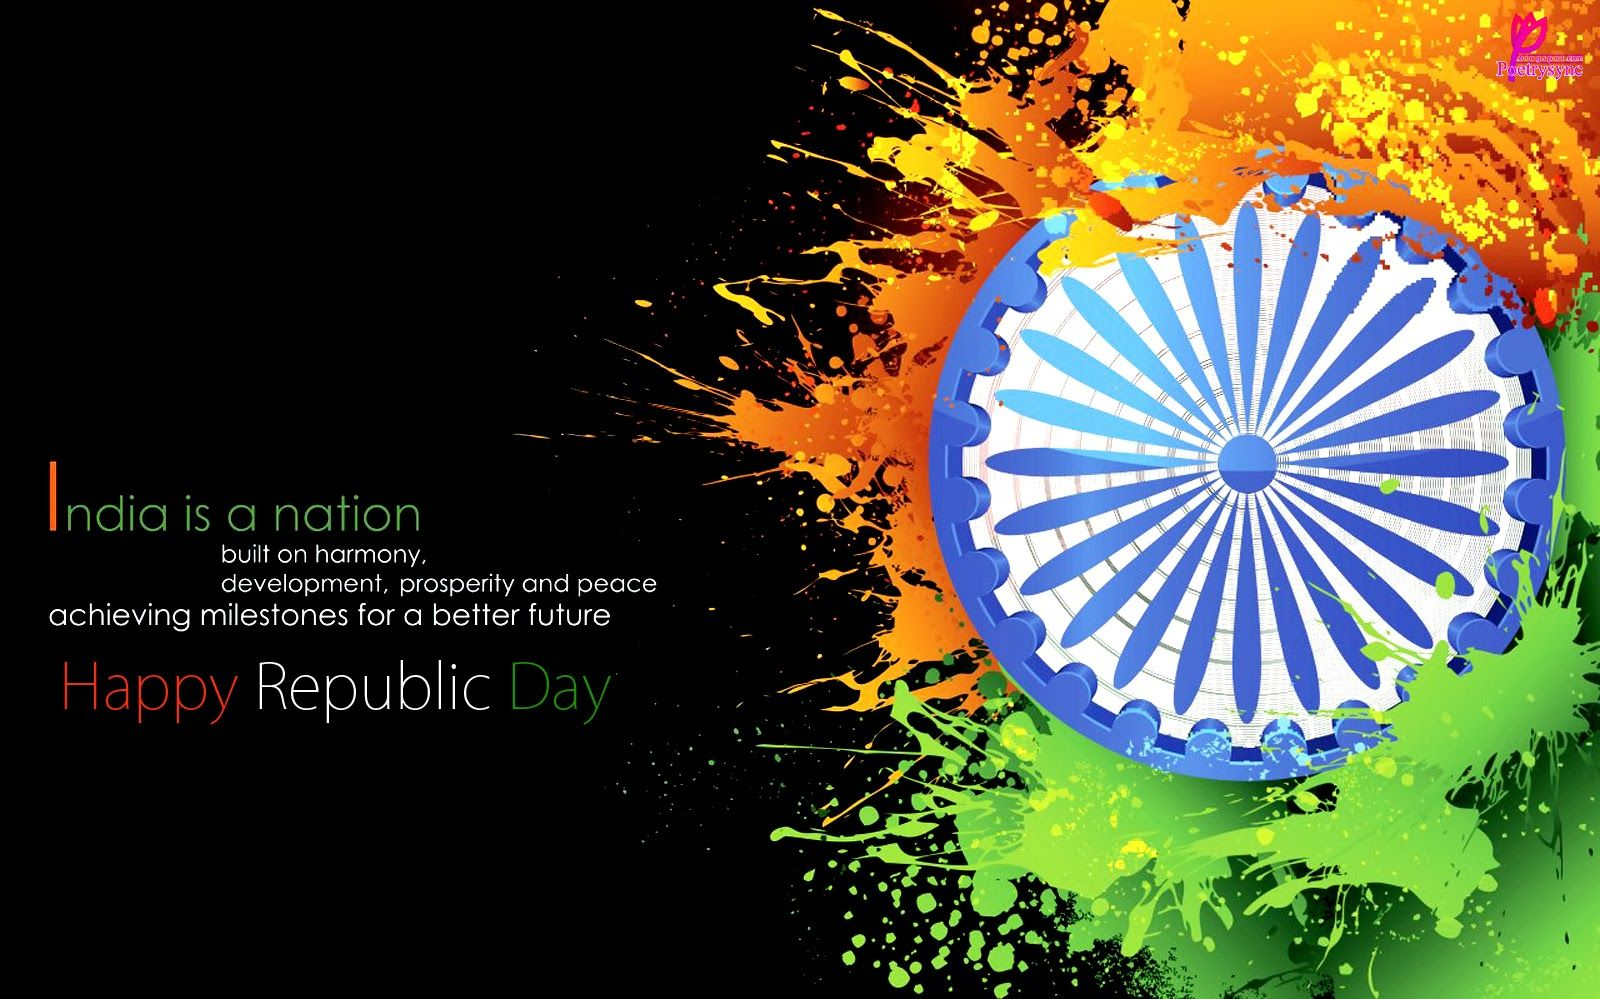 best republic day speech republic day  happy republic 26 jan day wishes sms messages picture 26 republic day of image